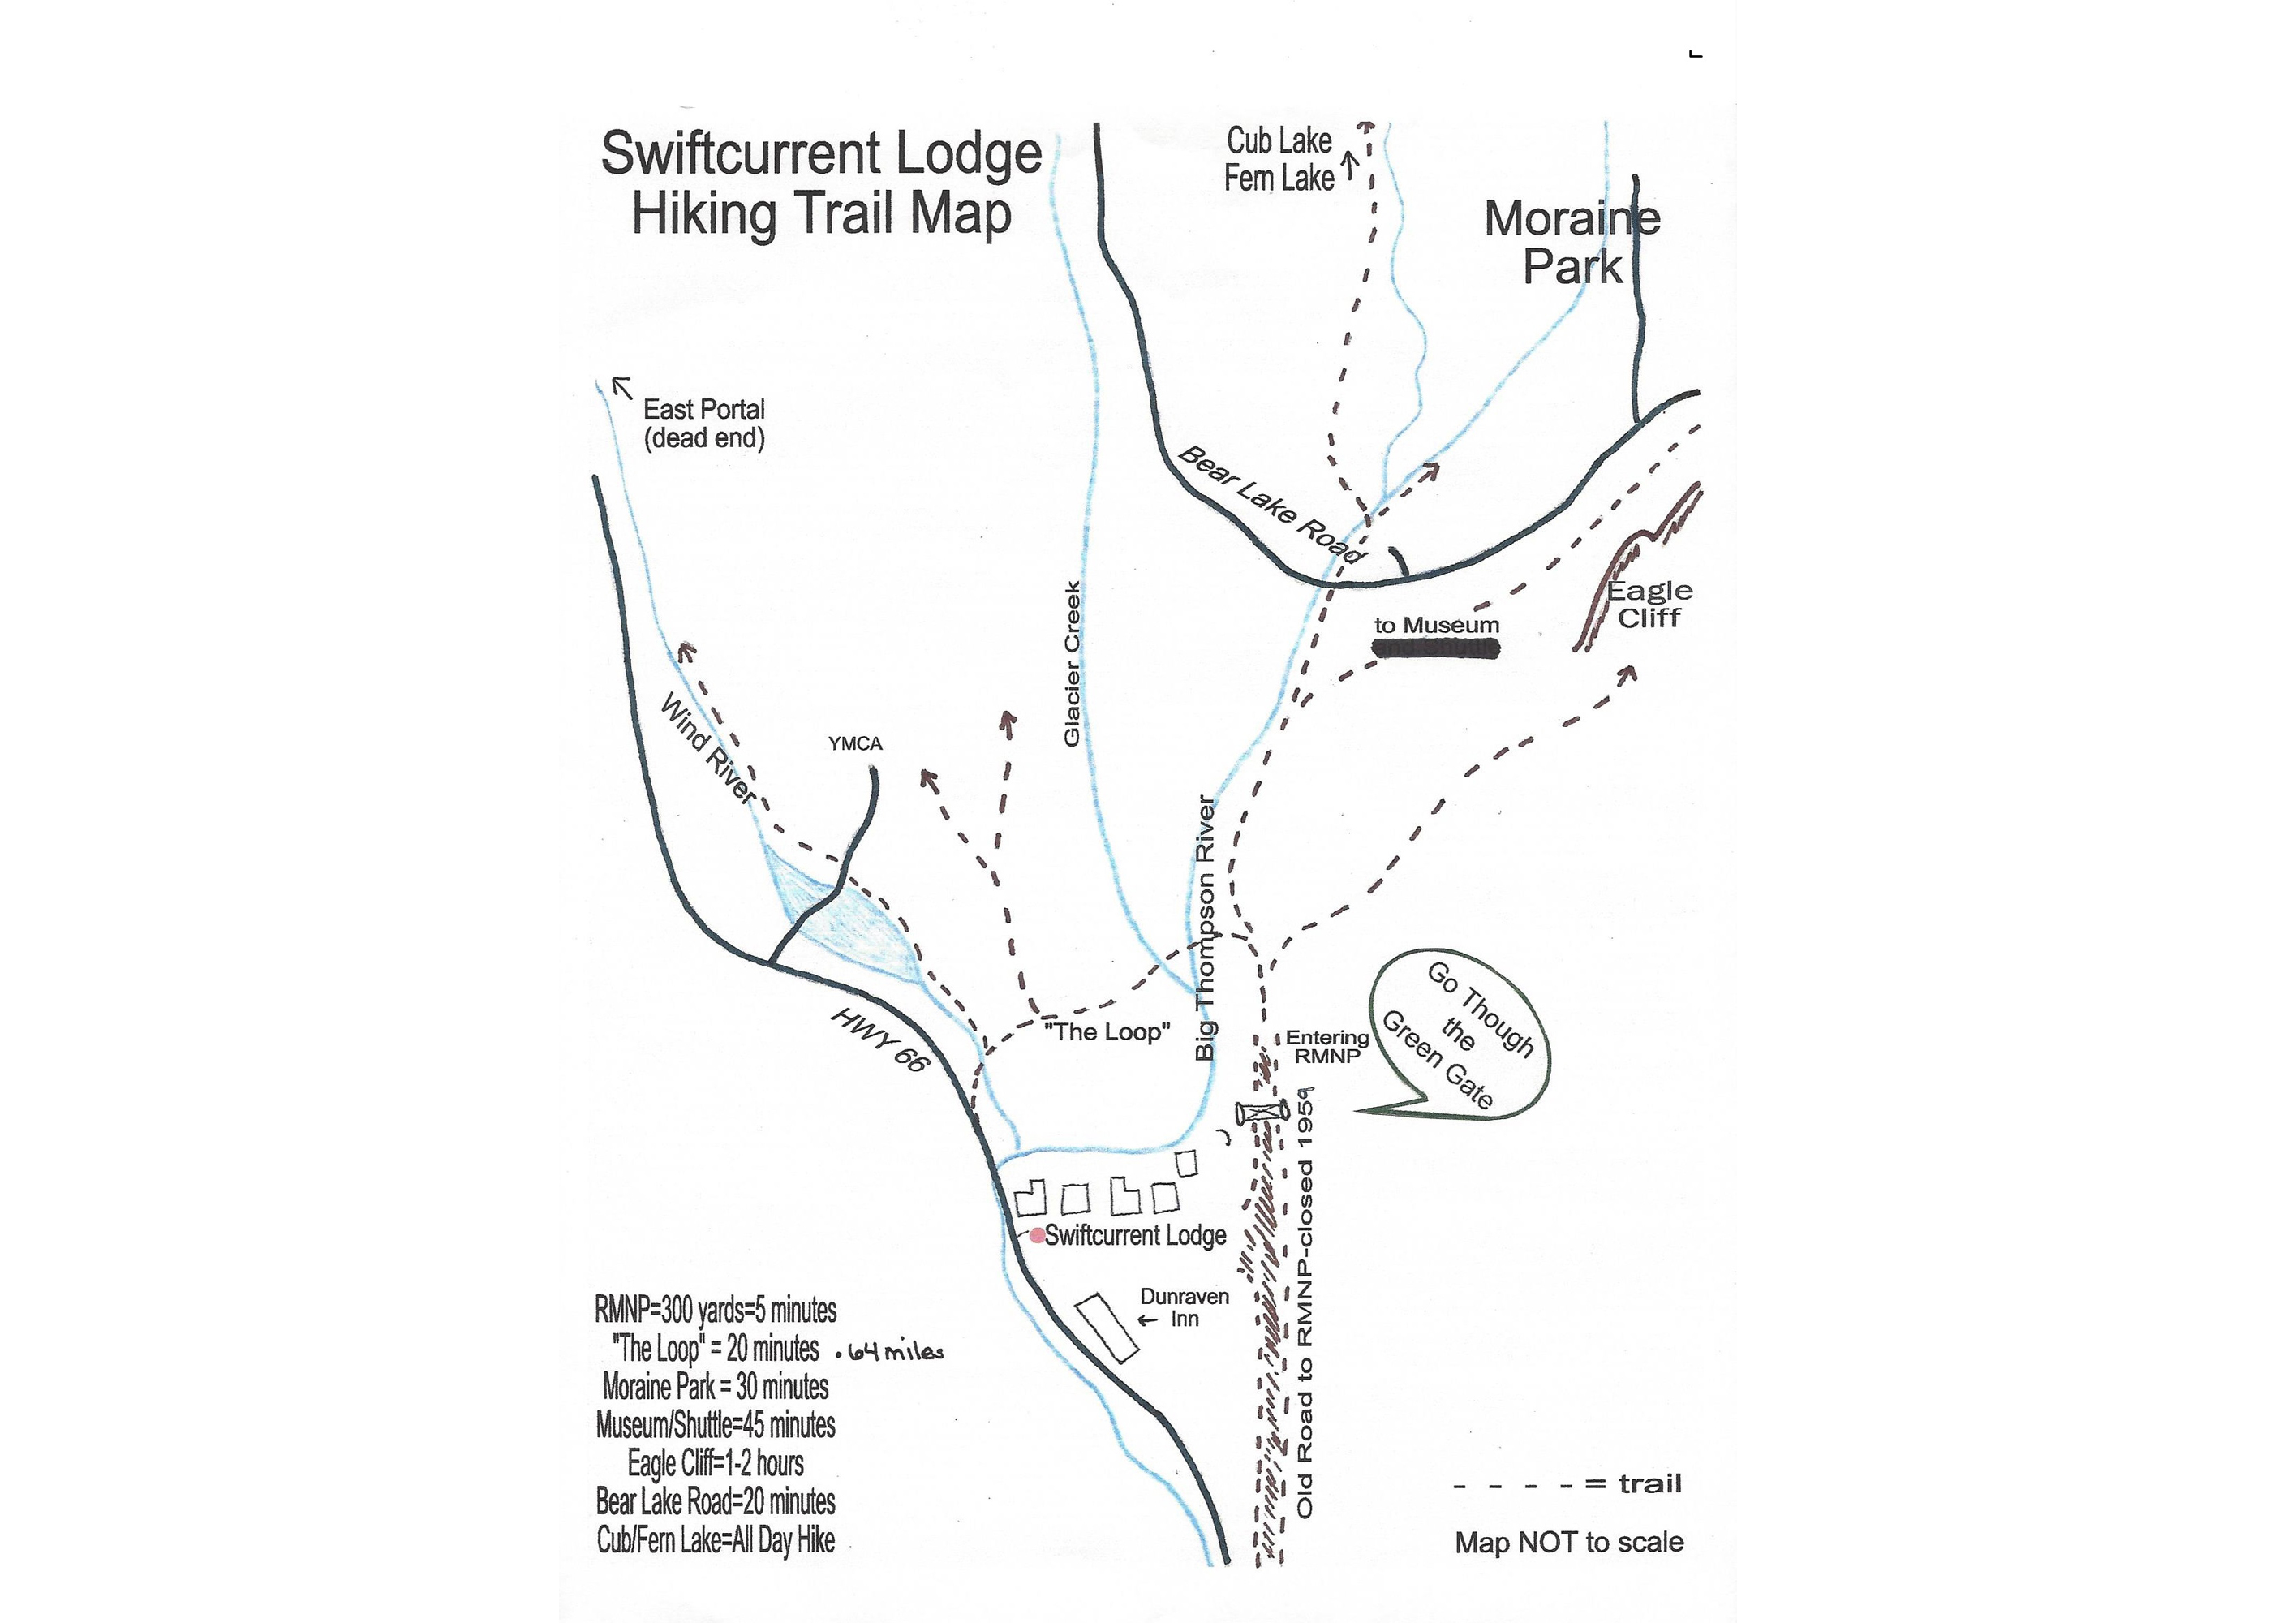 Swiftcurrent Lodge on the River in Estes Park, CO - Hiking Map